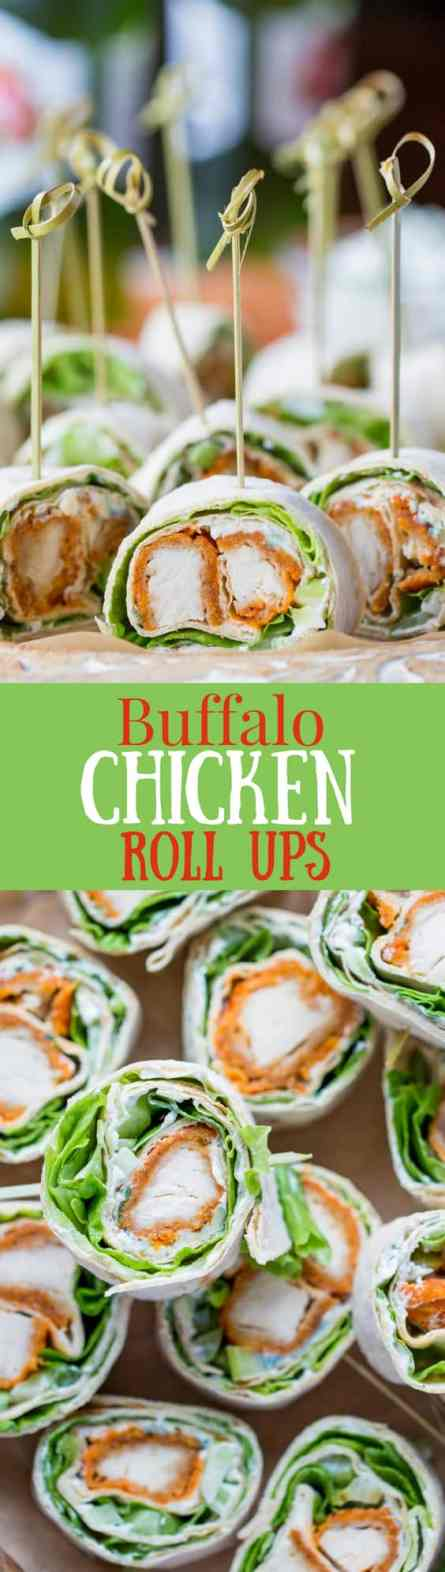 Buffalo Chicken Roll Up Appetizers ~ made with all-natural frozen chicken tenders tossed in hot sauce, then rolled up with a homemade blue cheese dip, celery, and crisp lettuce. blue cheese   buffalo chicken   appetizer   roll ups   wraps   www.savingdessert.com